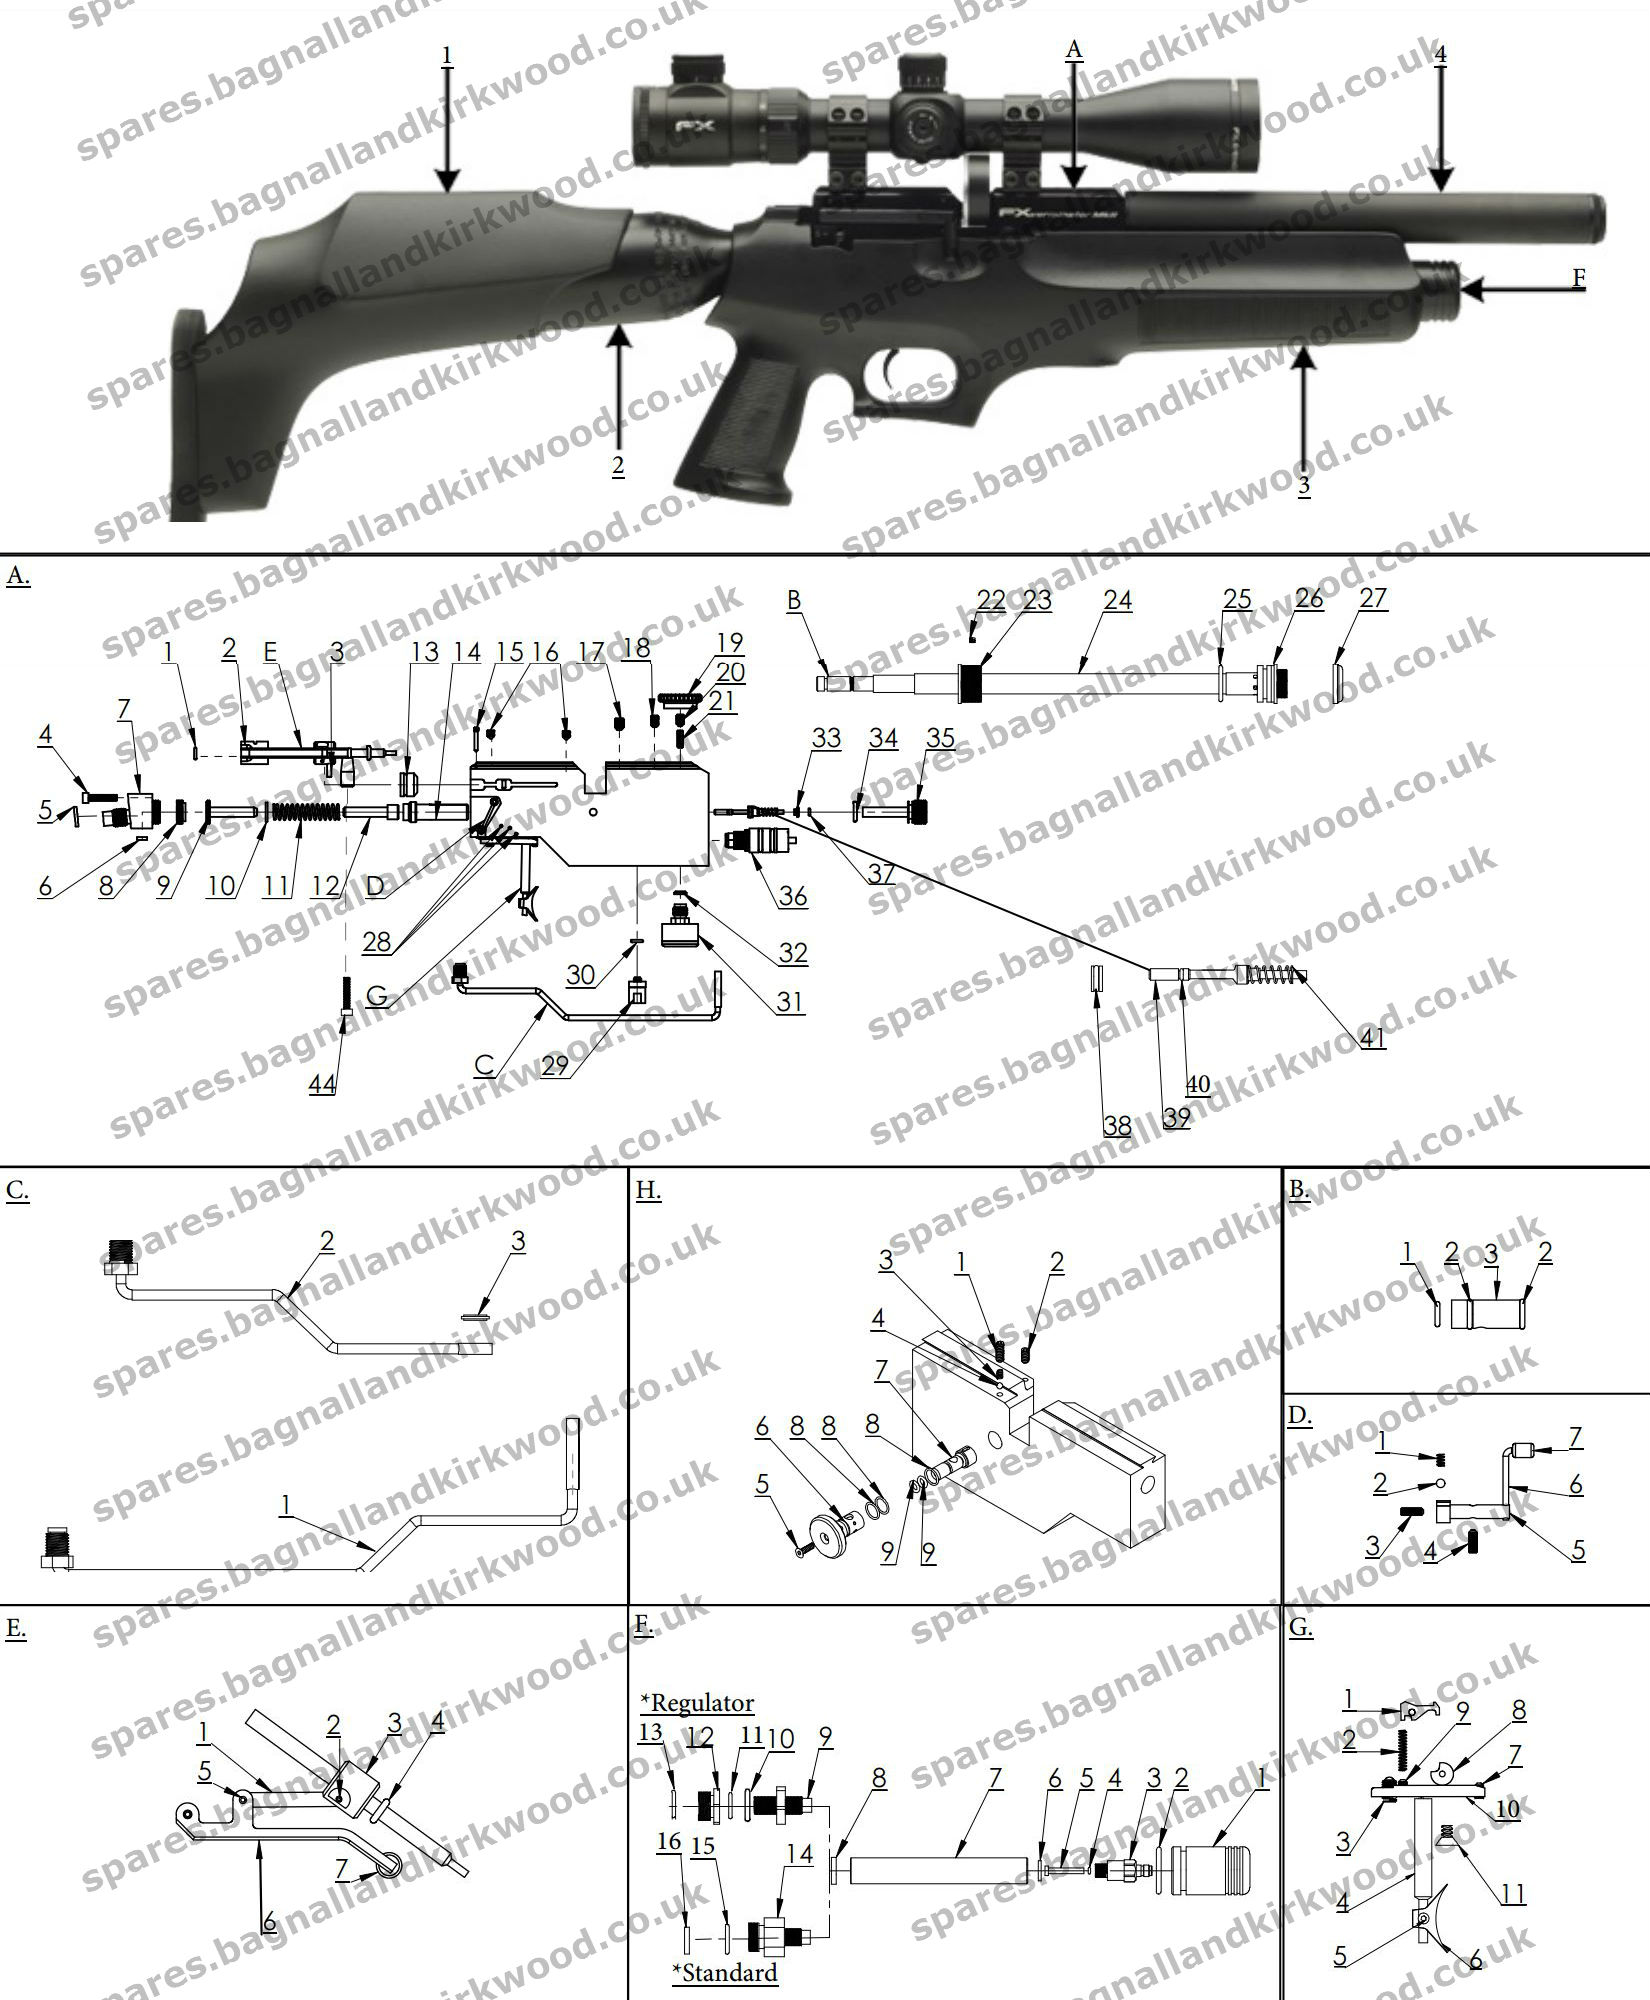 Pellet Gun Diagrams Schematics Schematic Circuit Diagram Together With Stun Circuits Free Air Exploded All Kind Of Wiring U2022 Shotgun Parts